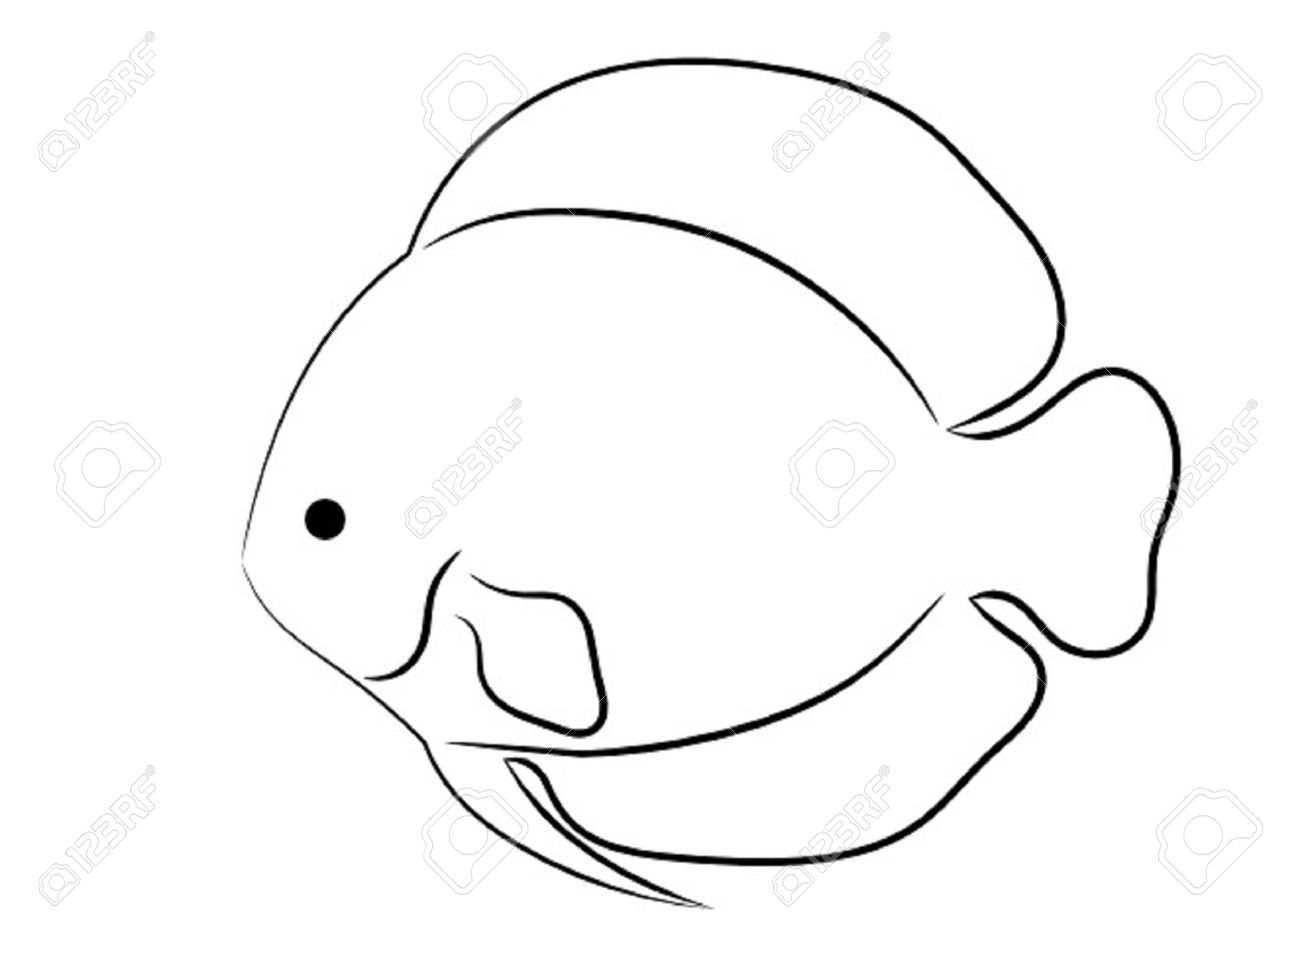 Line Drawing Of Fish : Simple line art design google search